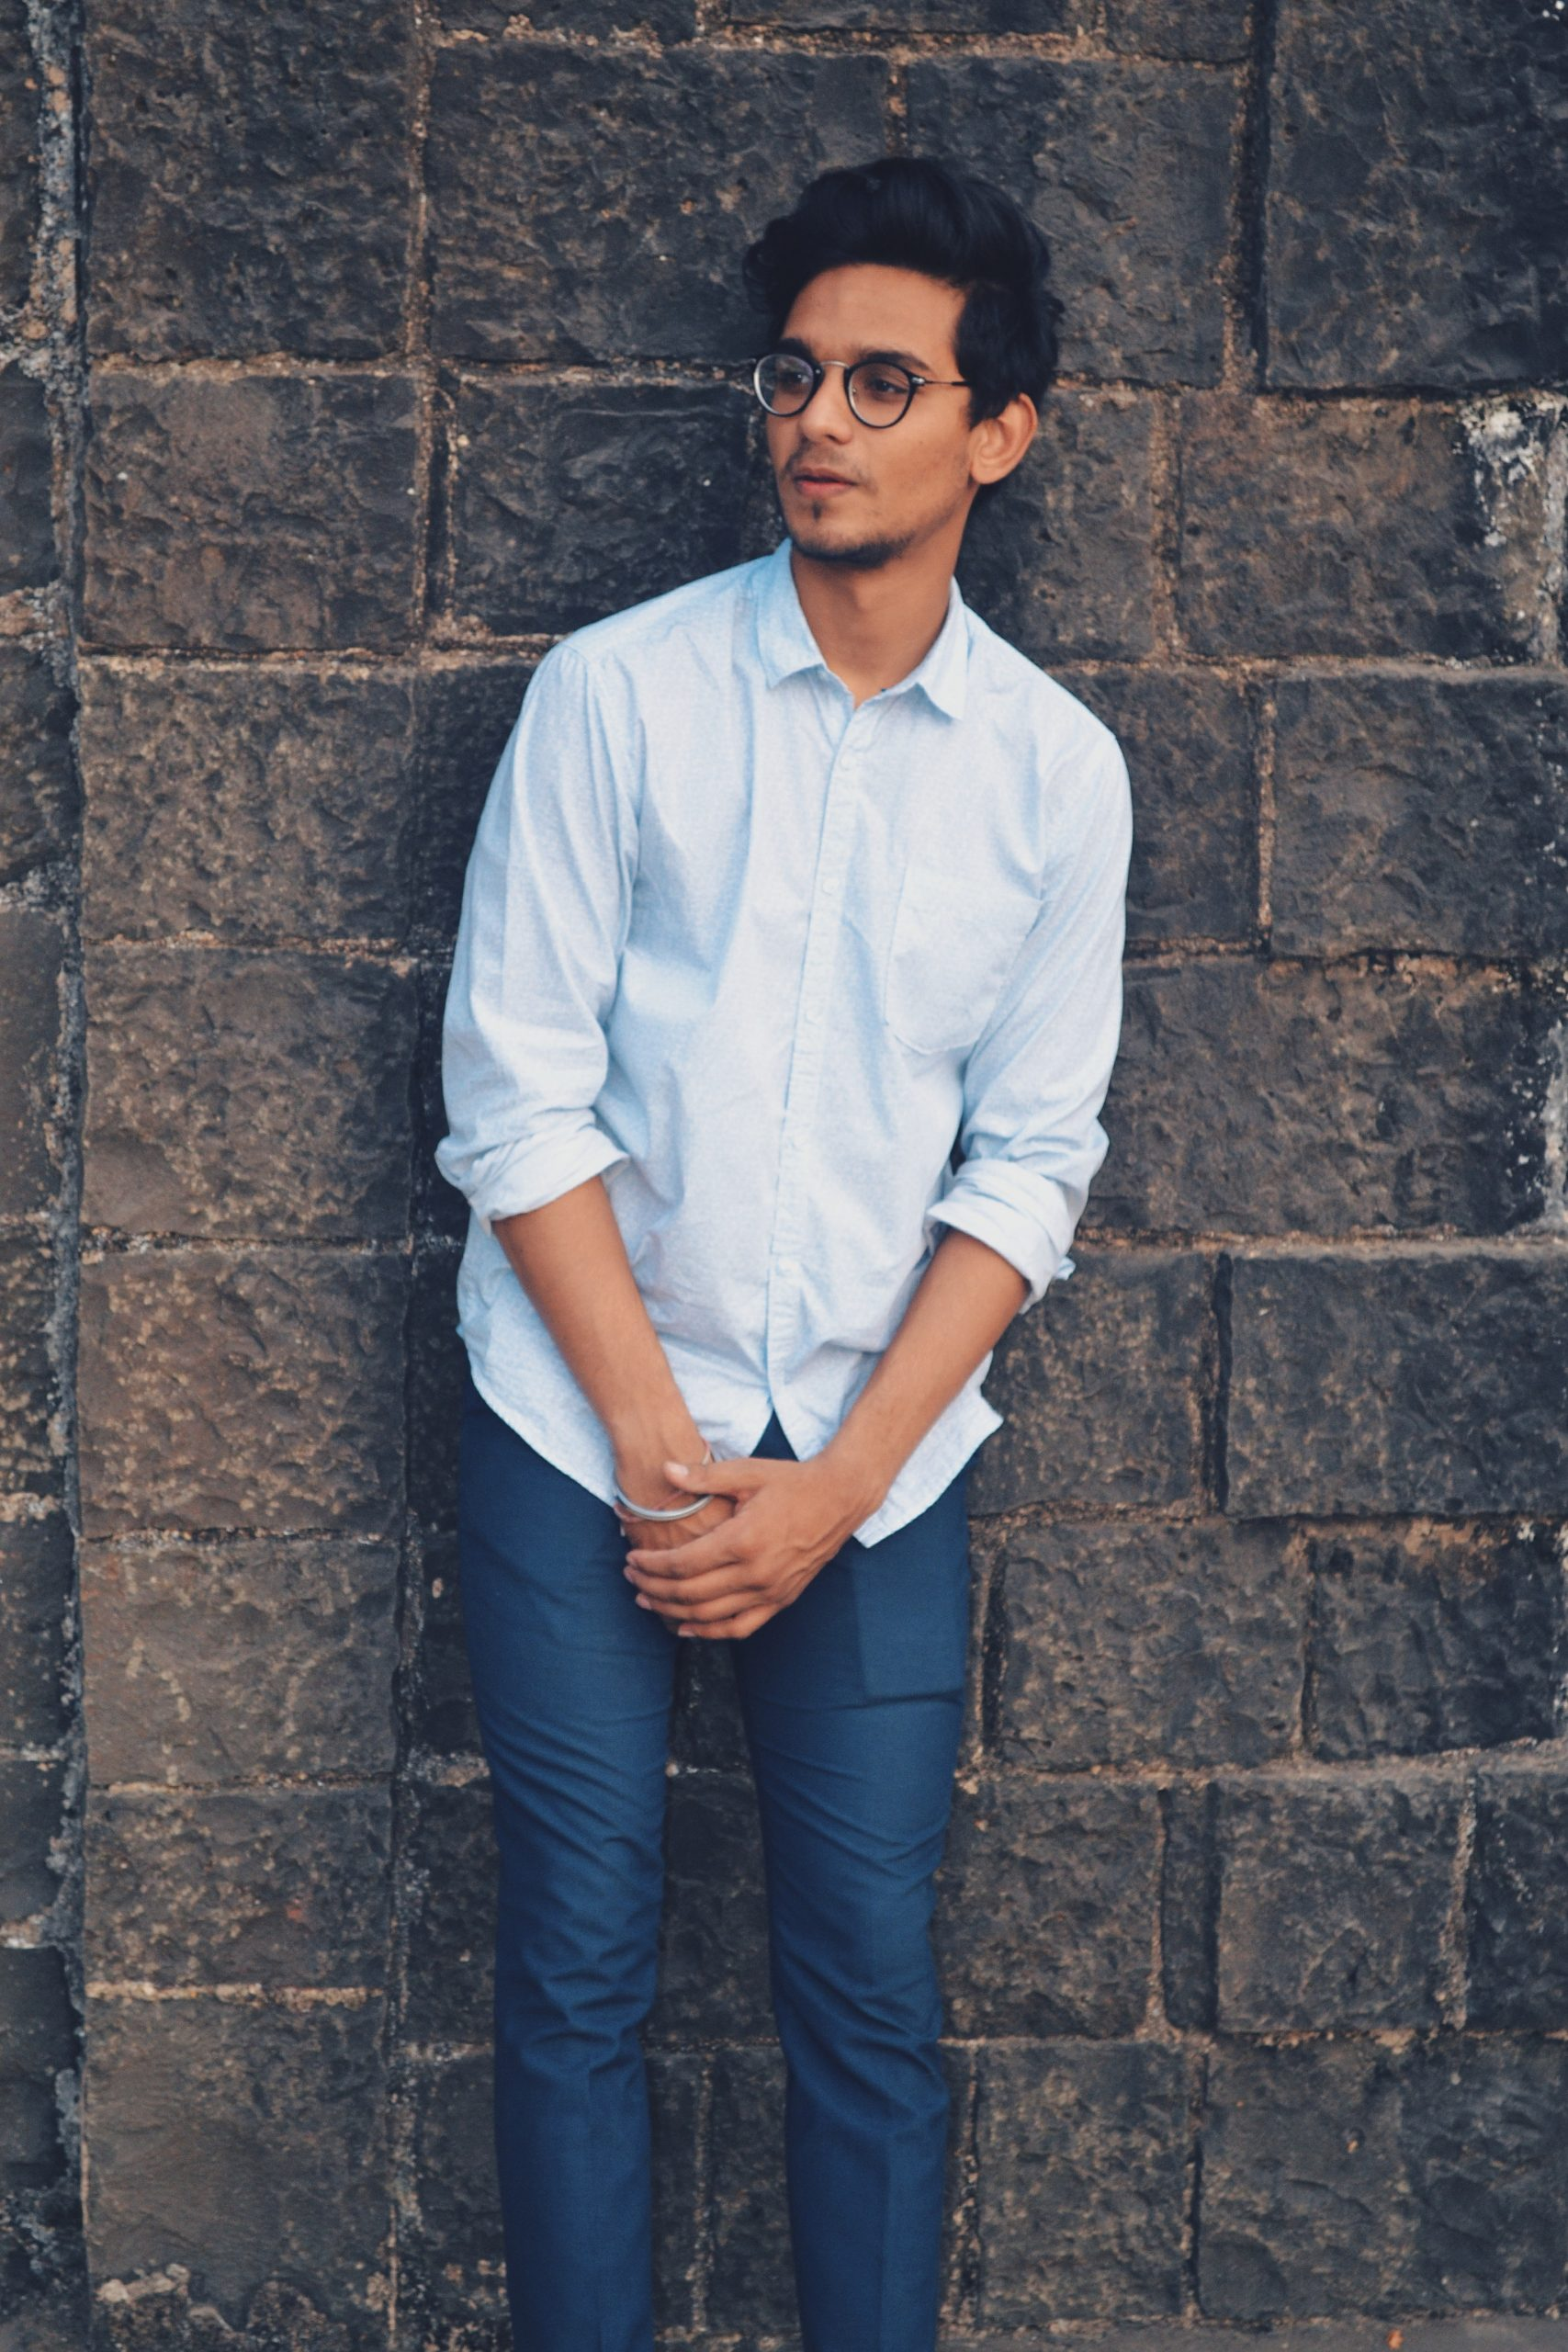 man leaning against a wall wearing a white/light blue button-up shirt and navy blue dress pants